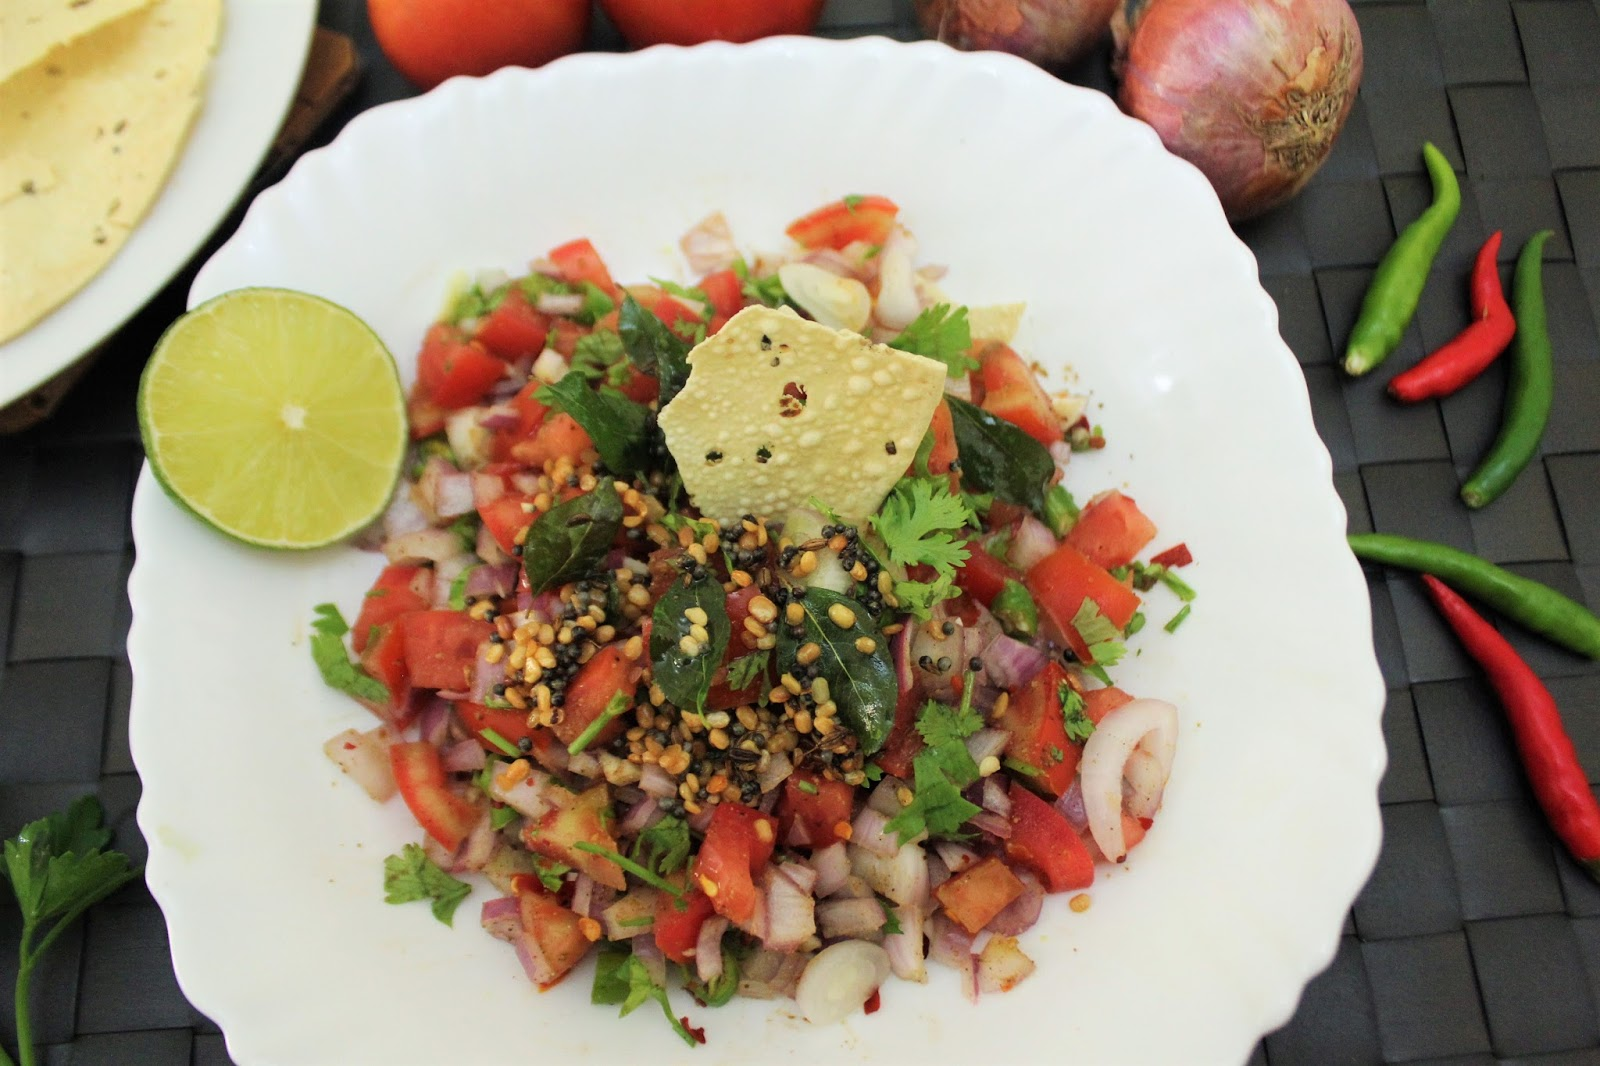 Bethica S Kitchen Flavours Mexican Salsa With Indian Tadka Fusion Style